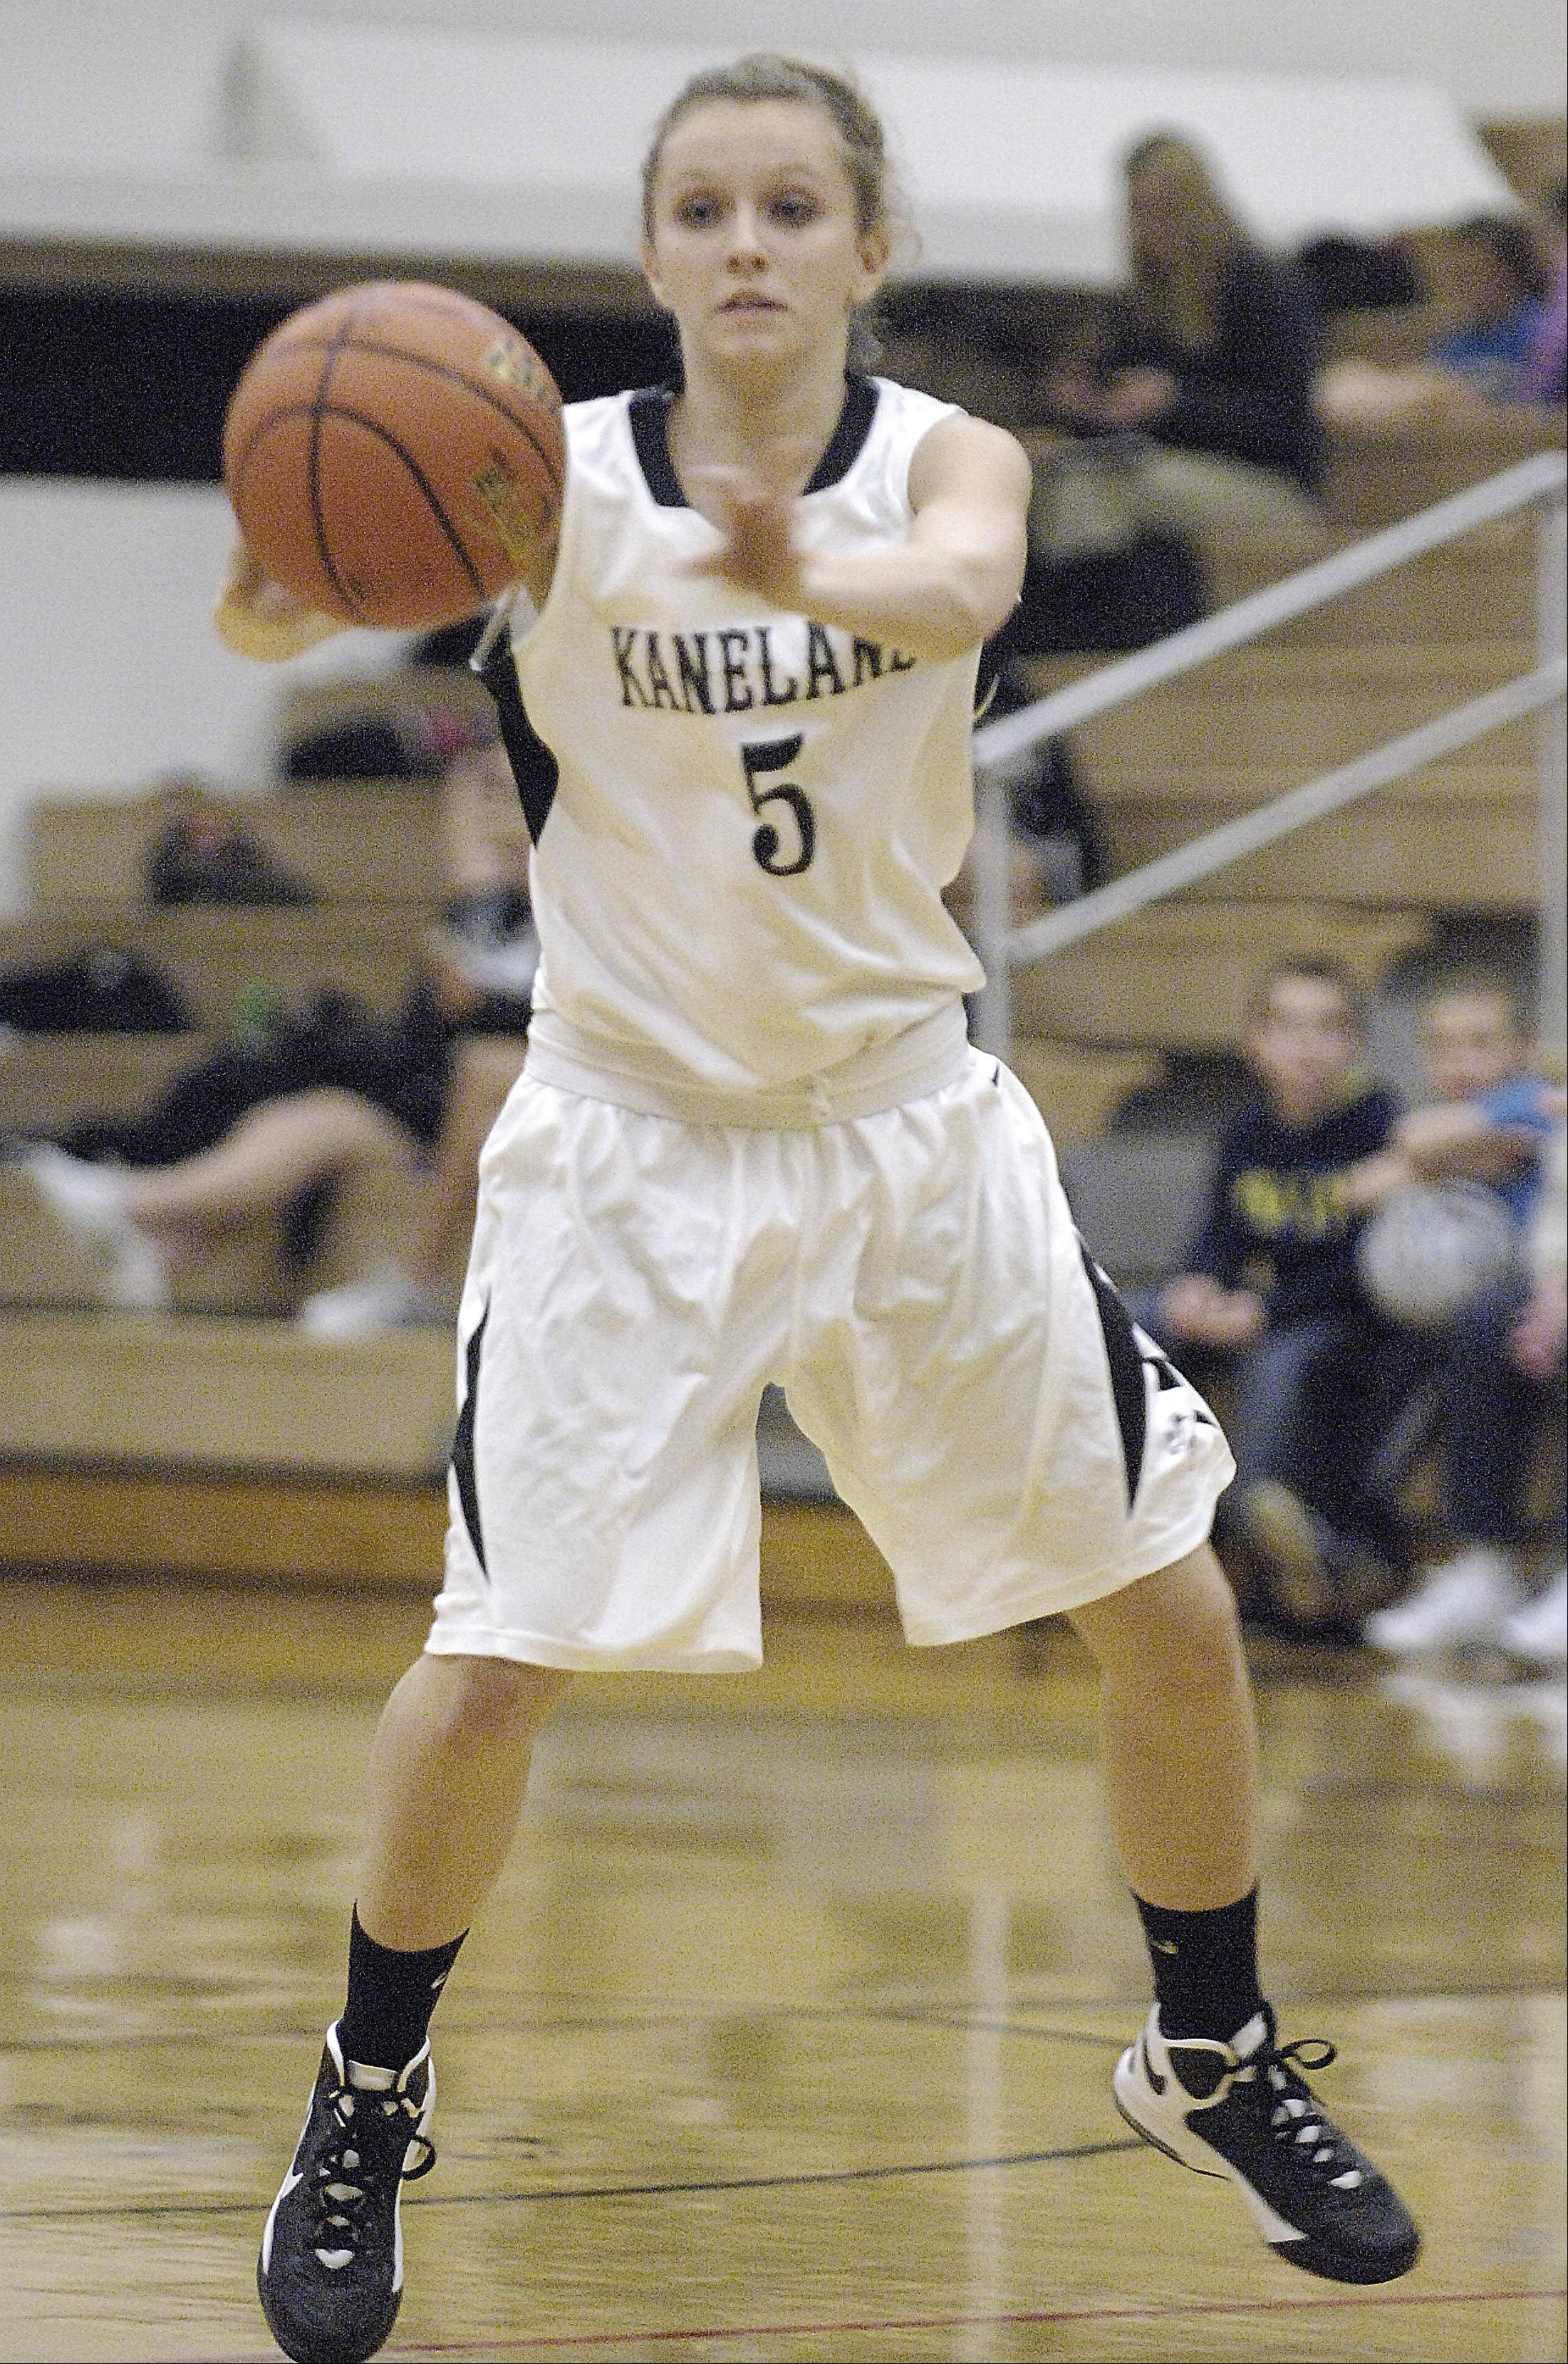 Images from the Sycamore vs. Kaneland girls basketball game Thursday, December 6, 2012.